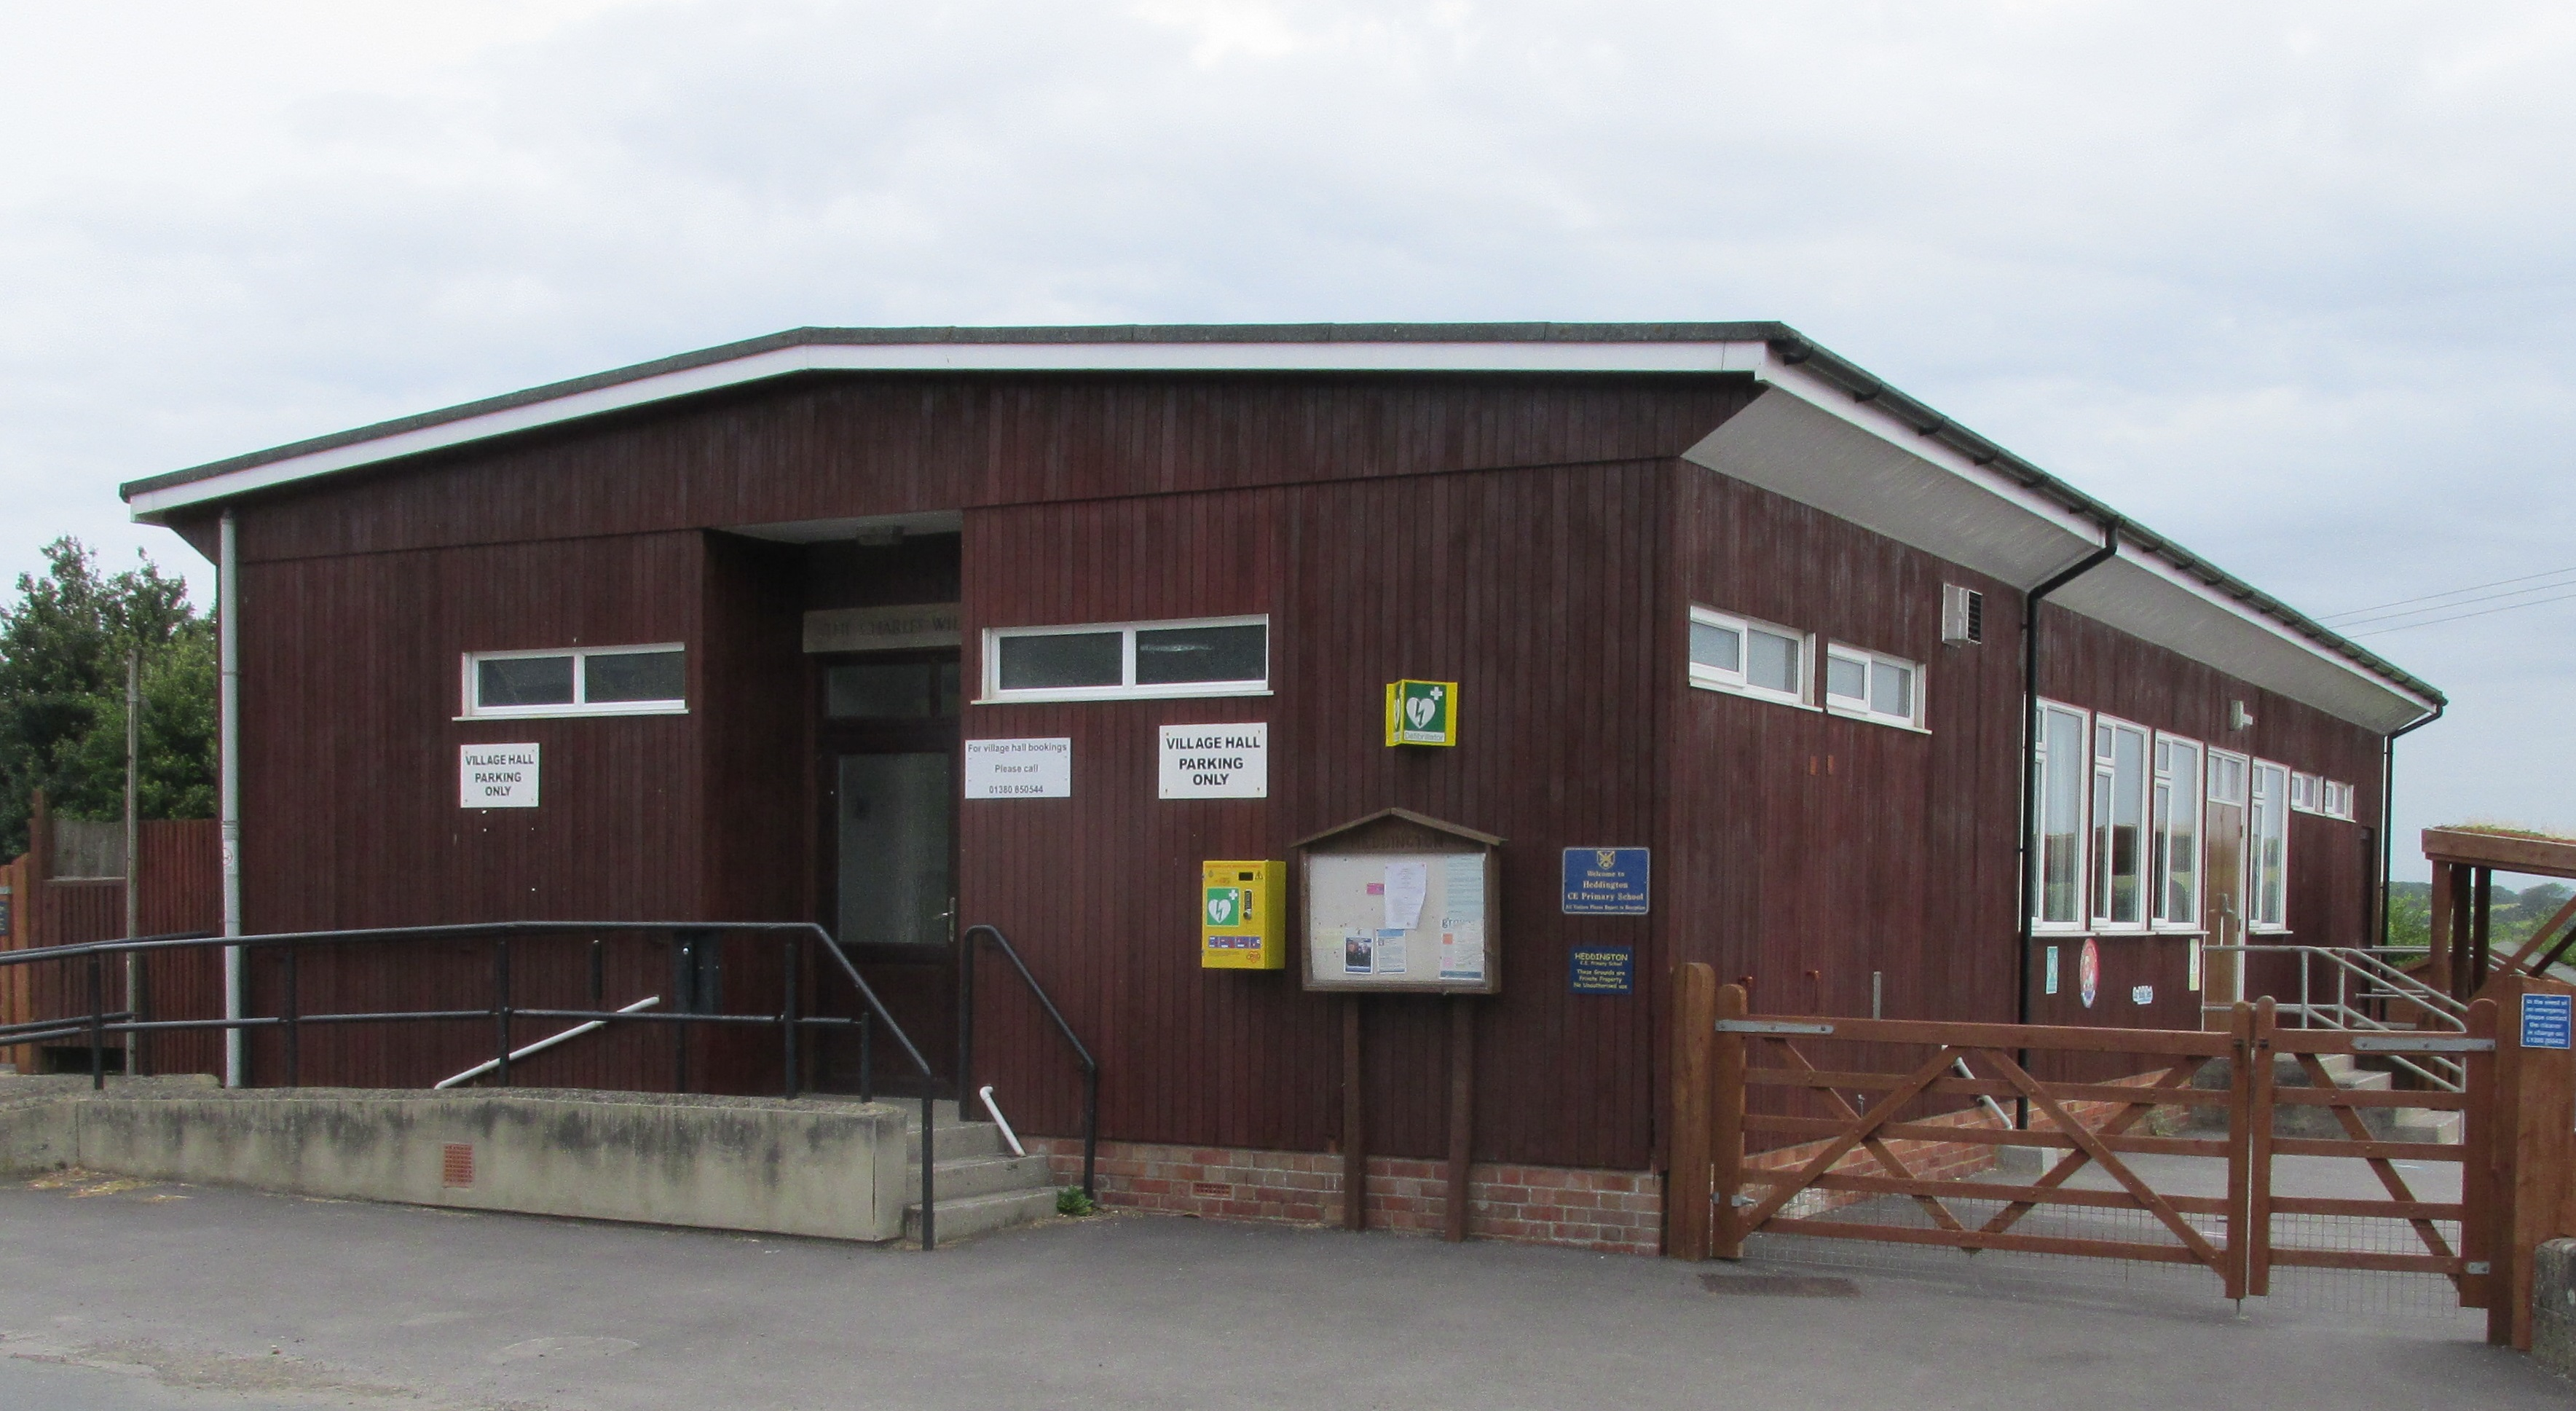 Heddington Charles Willis Village Hall